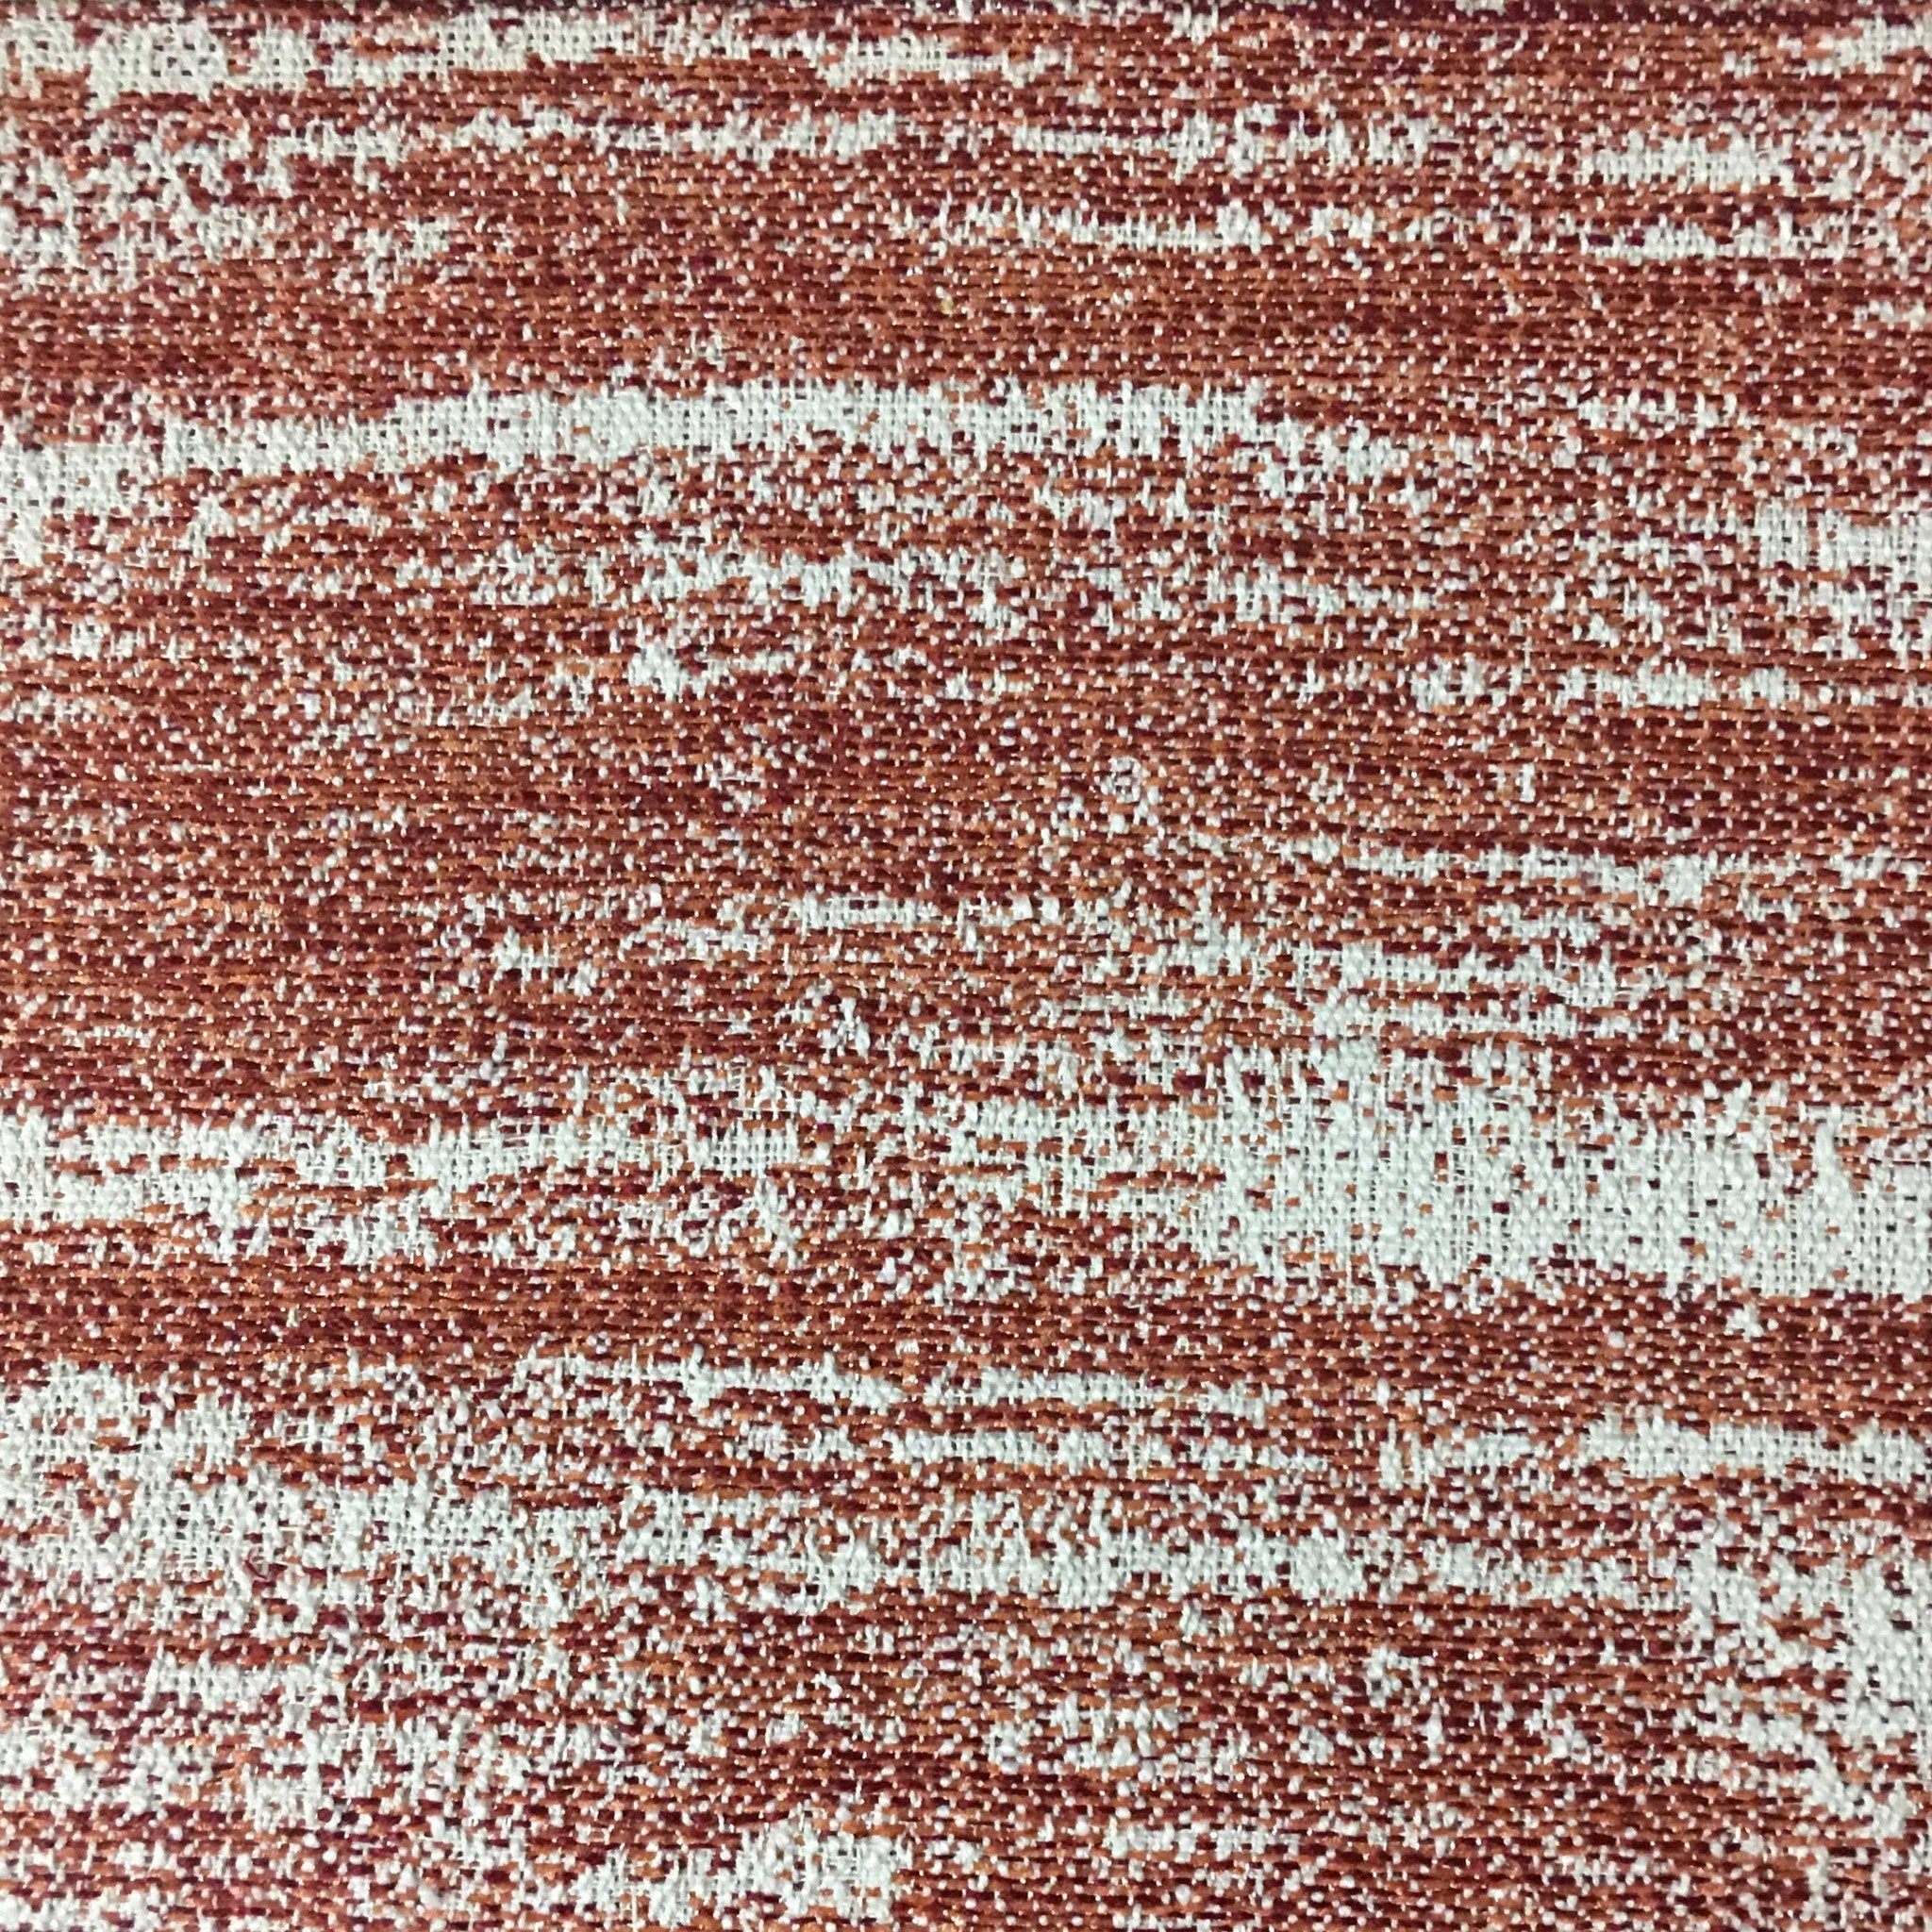 Sandy woven texture upholstery fabric by the yard 16 for Fabric for sale by the yard